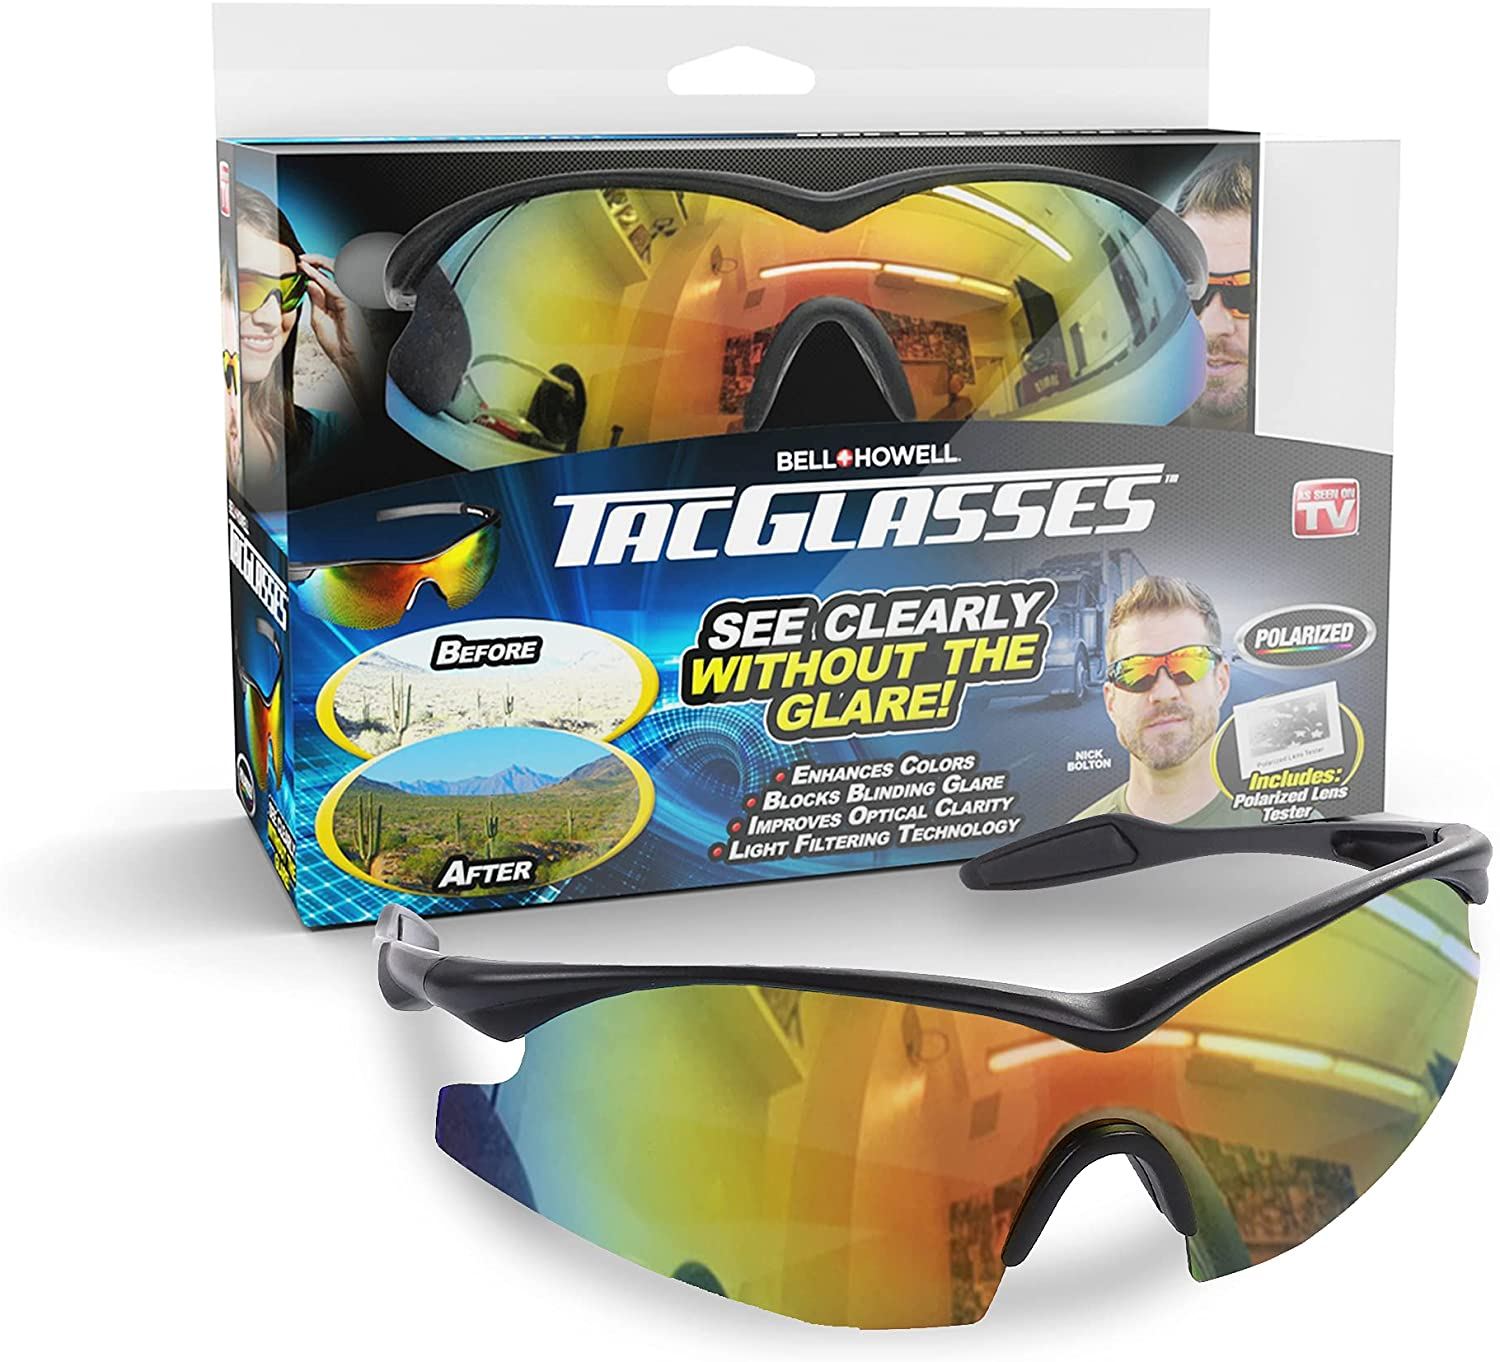 Max 60% OFF Tacglasses Polarized Sports Sunglasses Golfi 2021 new Safety For Driving